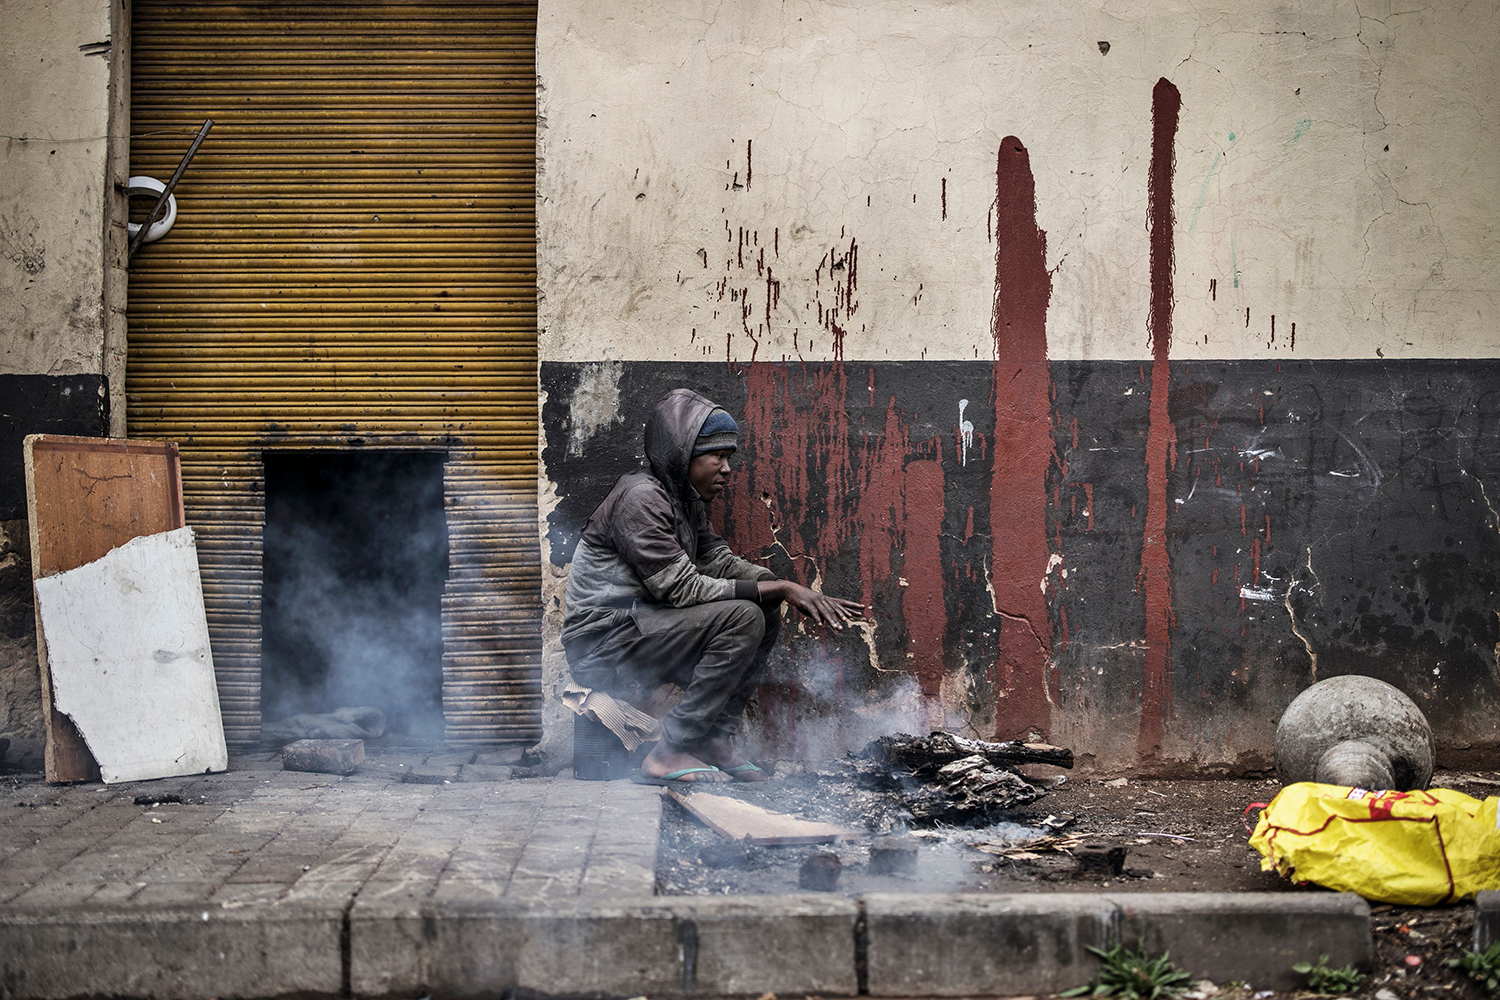 A homeless man warms up by burning wood in Johannesburg, South Africa, on April 28. MARCO LONGARI/AFP via Getty Images